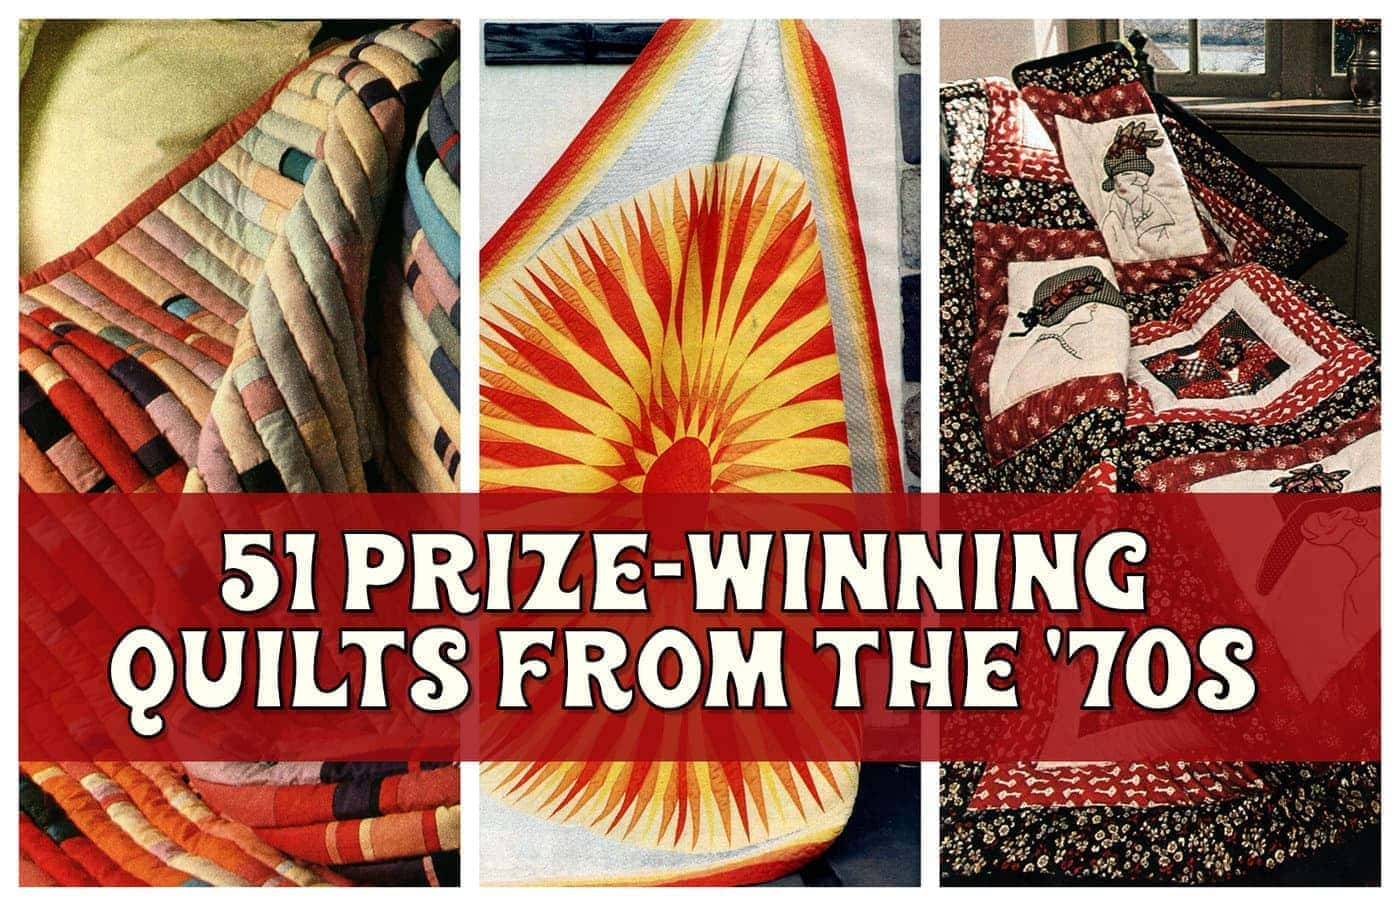 51 beautiful prize-winning quilts from the 70s